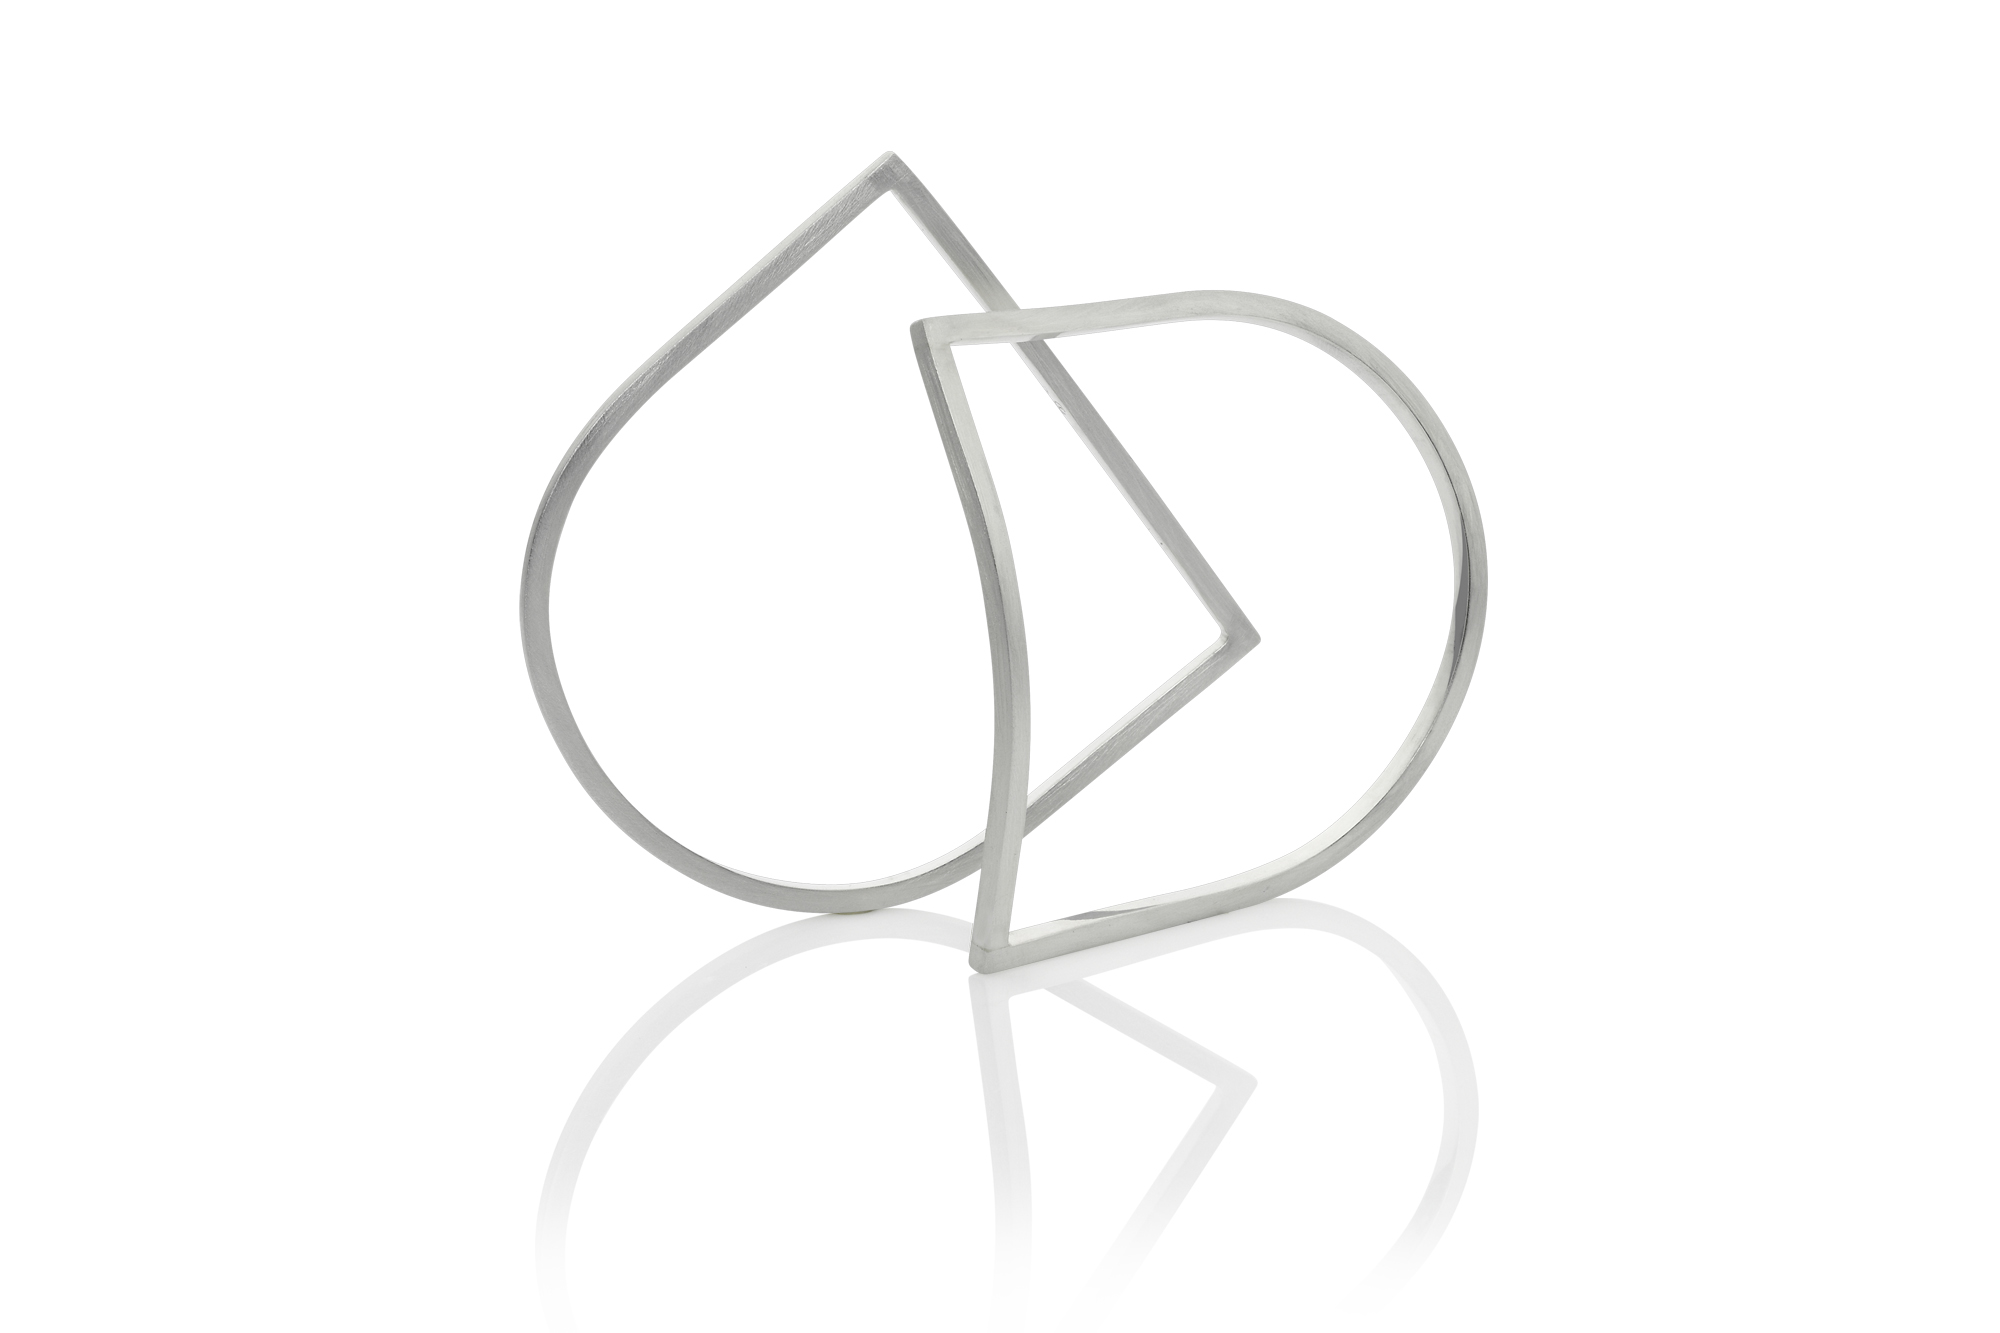 D-lock Bangle staight and curved